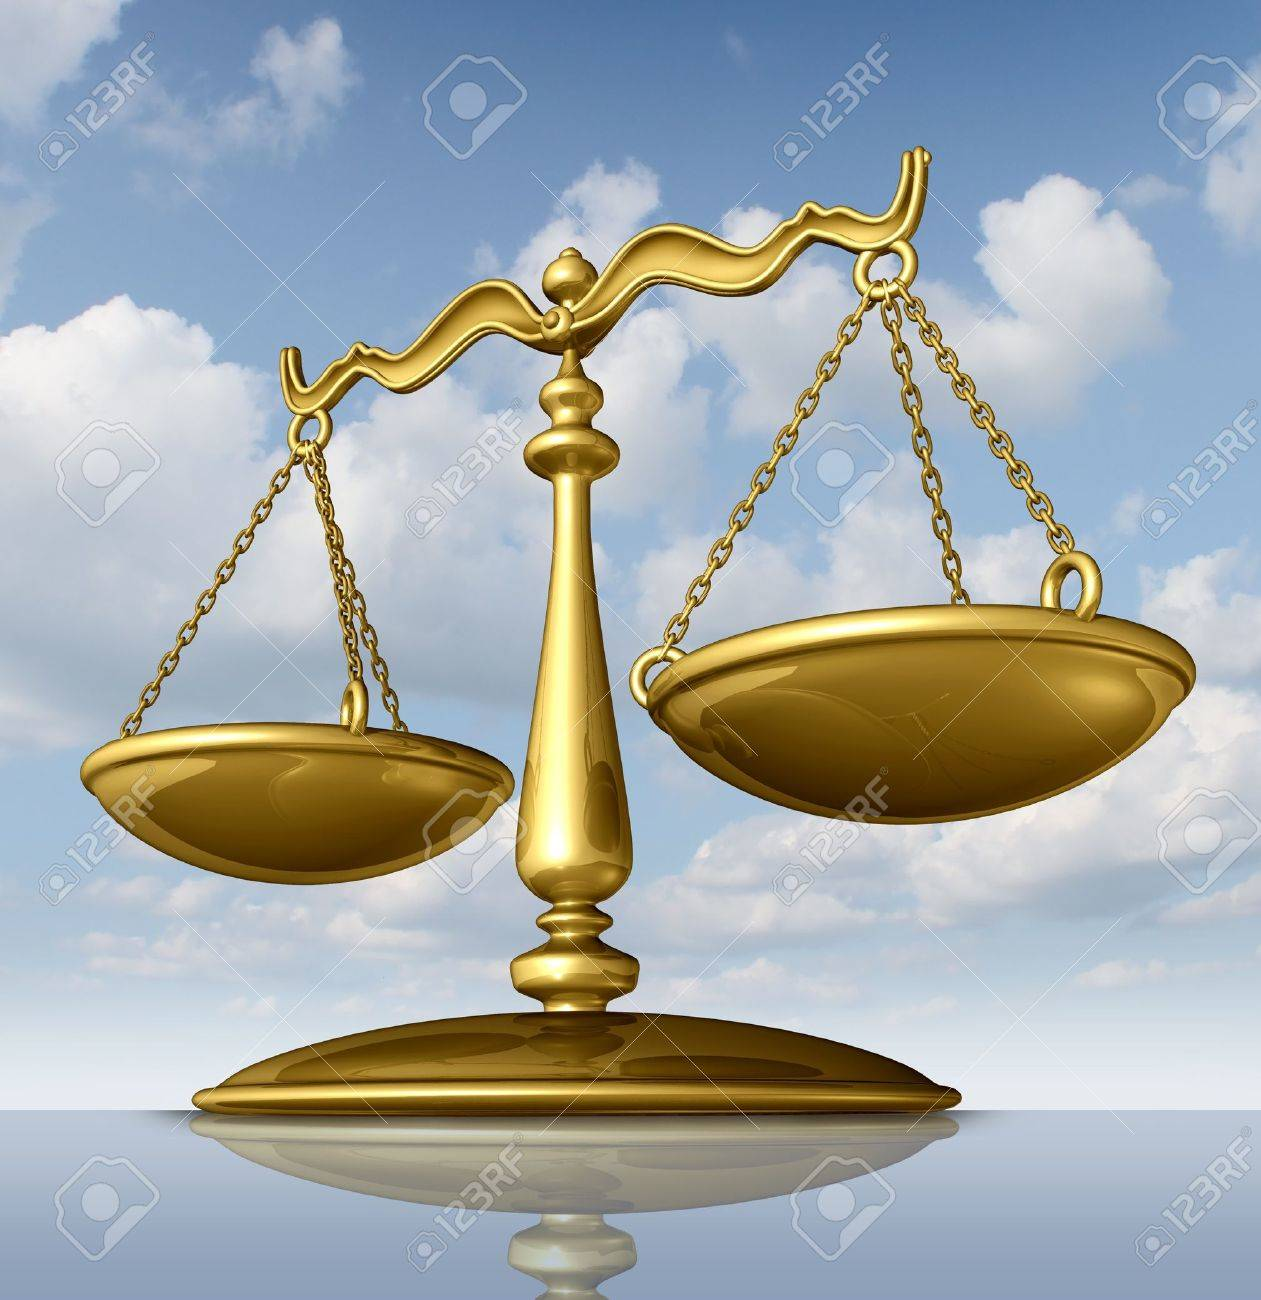 Justice Scale Of Law Made Of Chrome Metal On A Sky Background As A